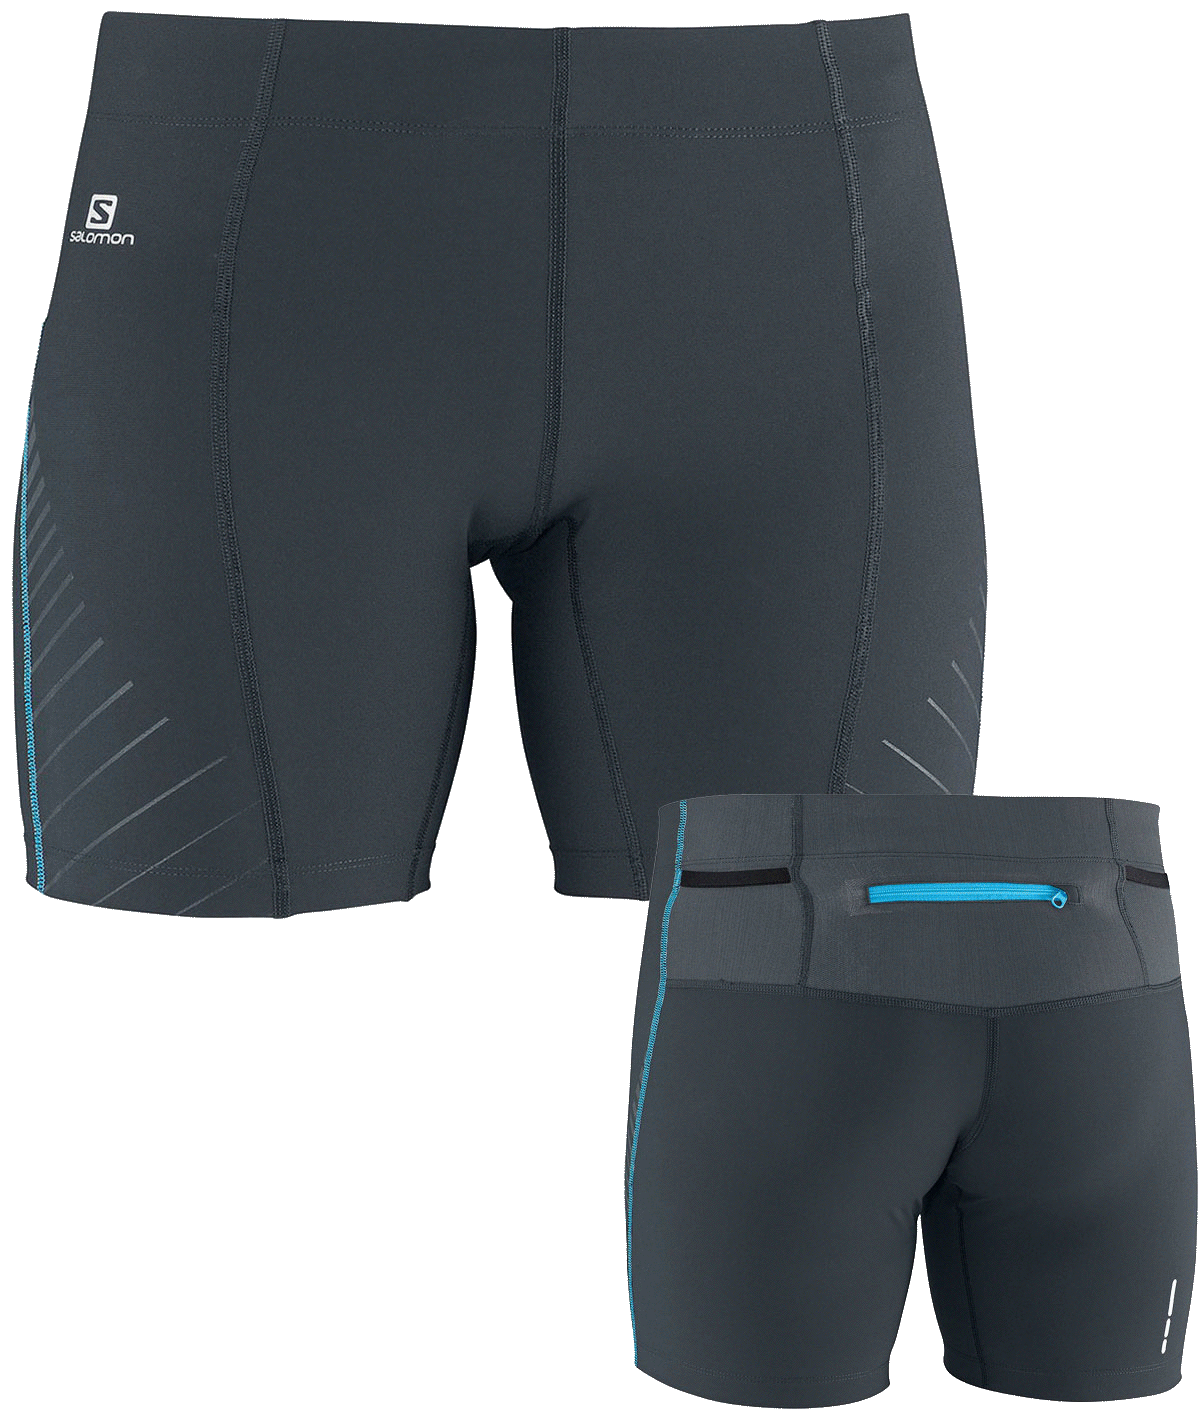 Salomon 1/4 Endurance Short Tight W cloud